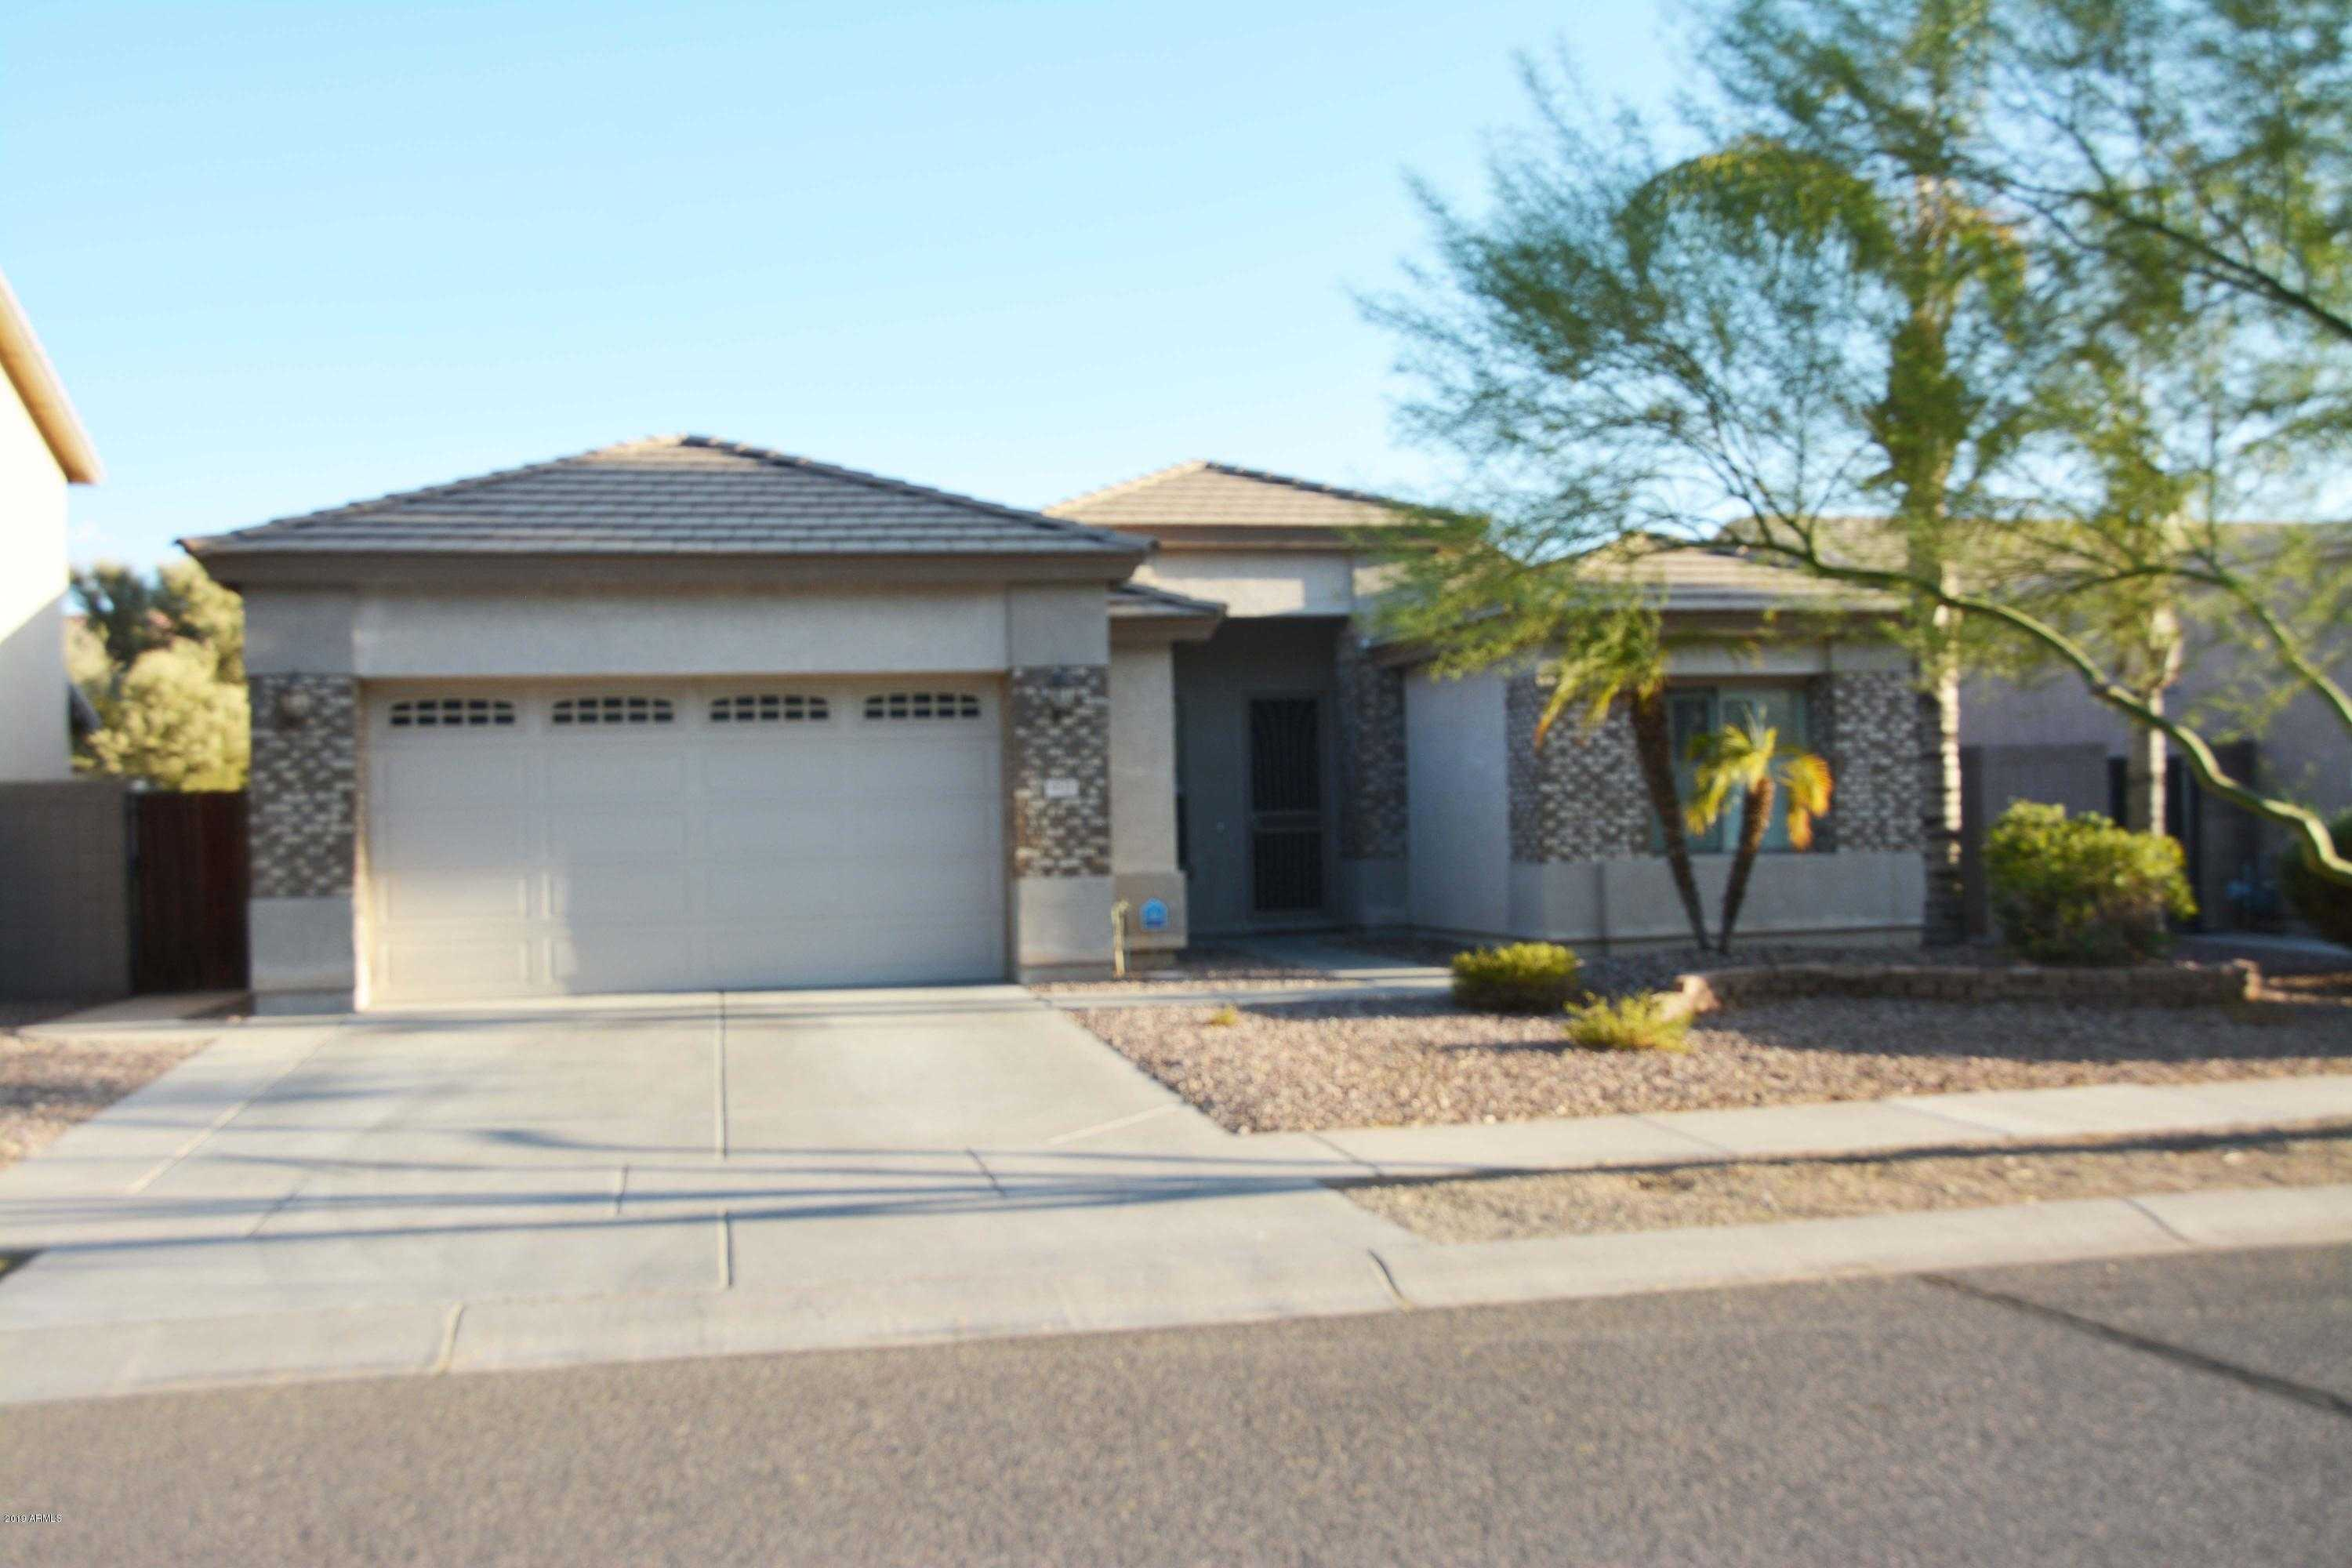 $304,900 - 3Br/2Ba - Home for Sale in Rovey Farm Estates South, Glendale